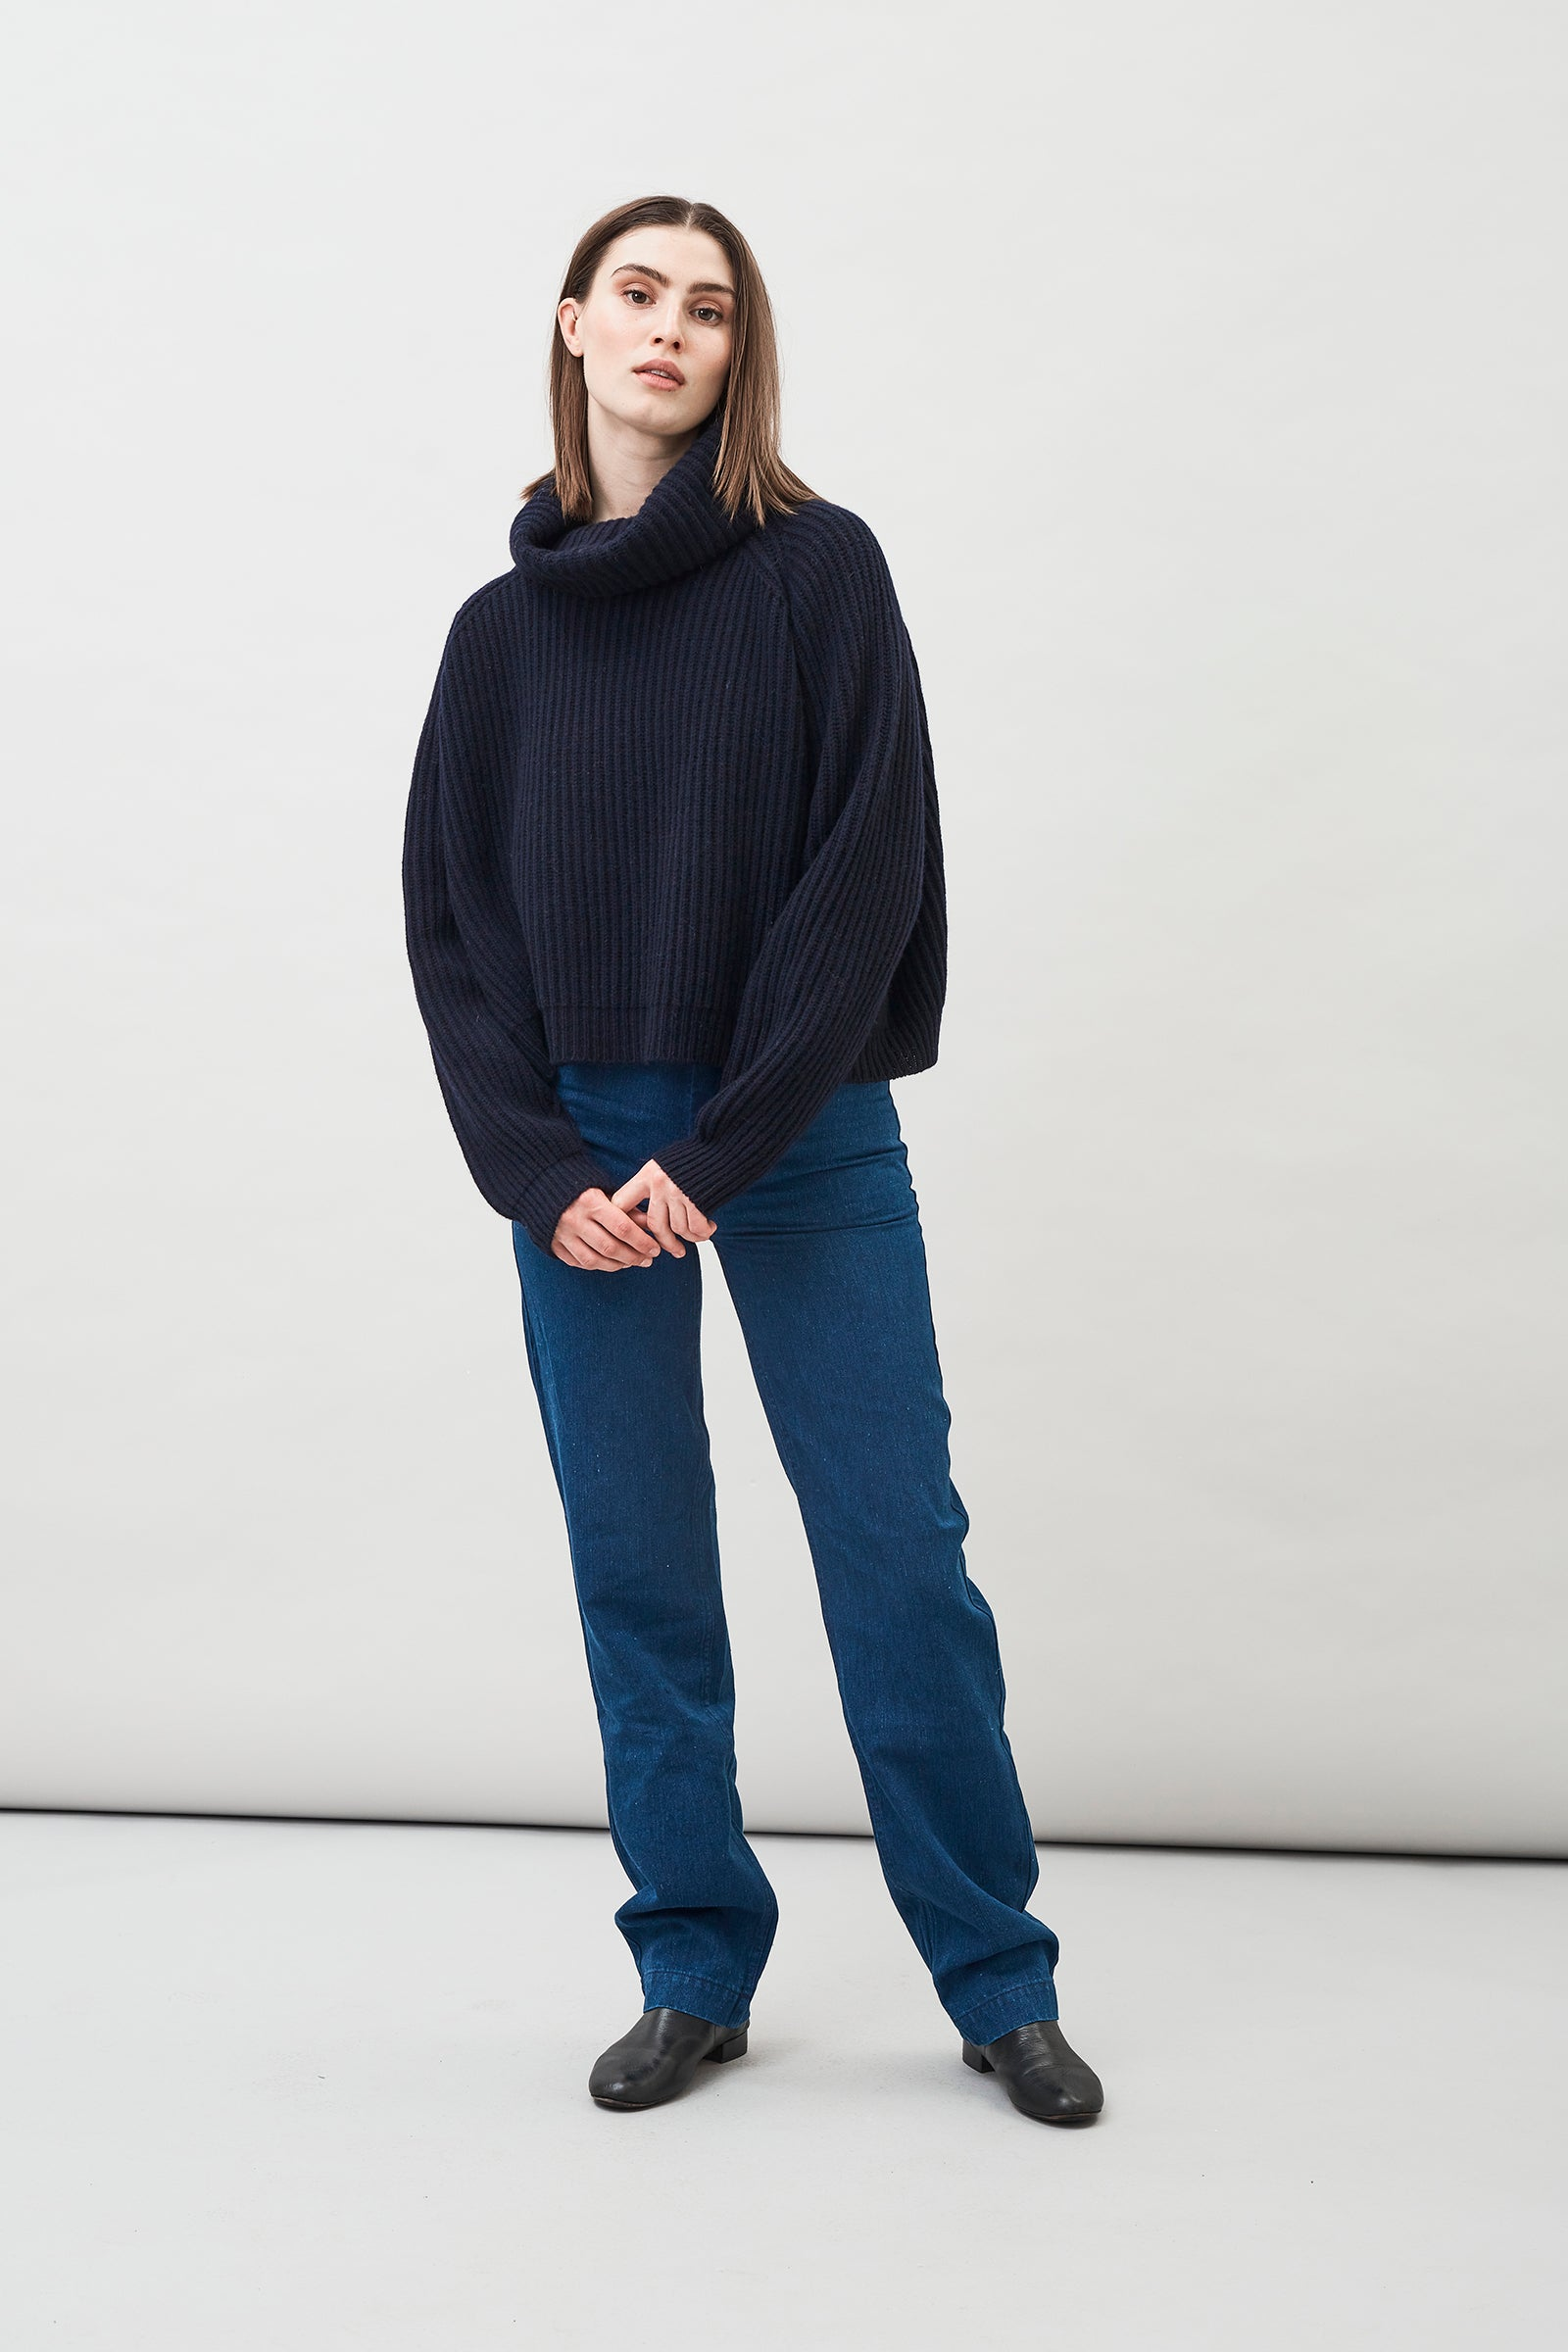 Della Wool Roll Neck Ribbed Sweater in Navy Blue with a cropped silhouette and fold-down collar.